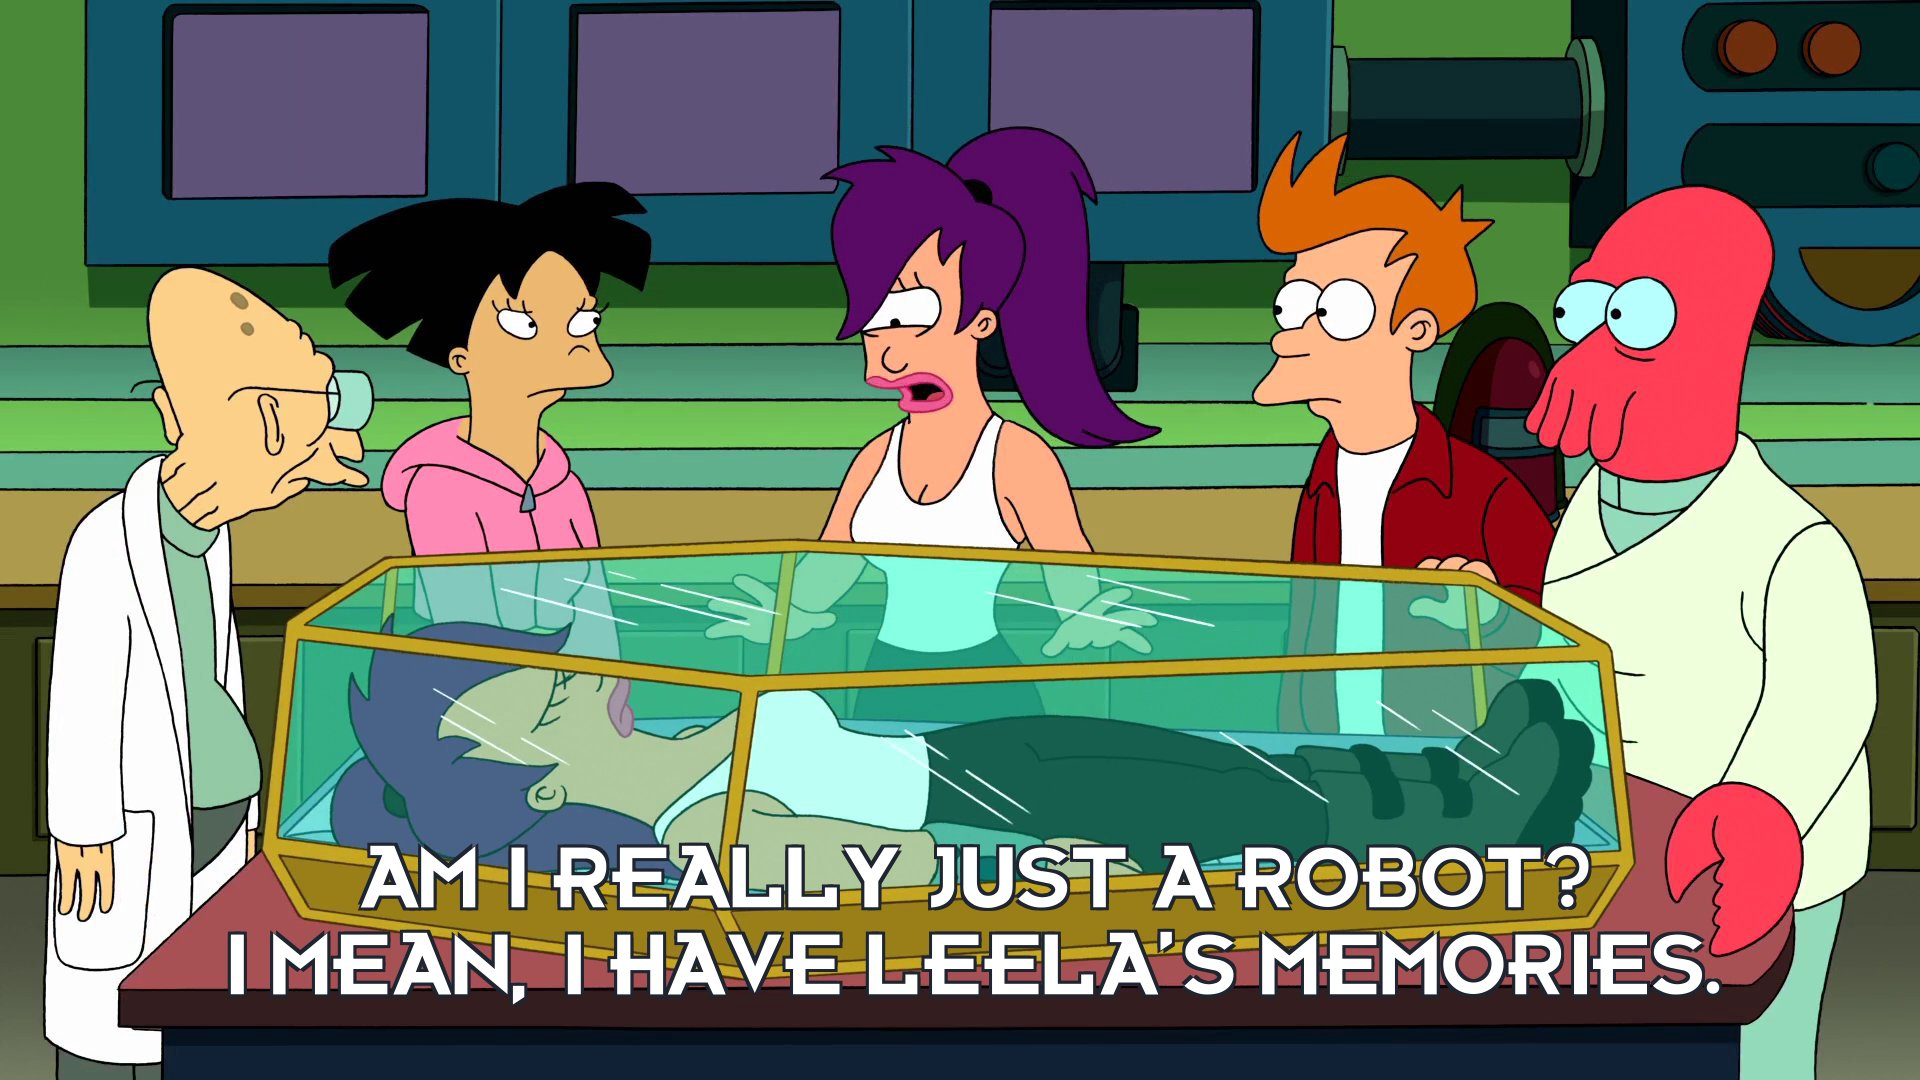 Robot Turanga Leela: Am I really just a robot? I mean, I have Leela's memories.